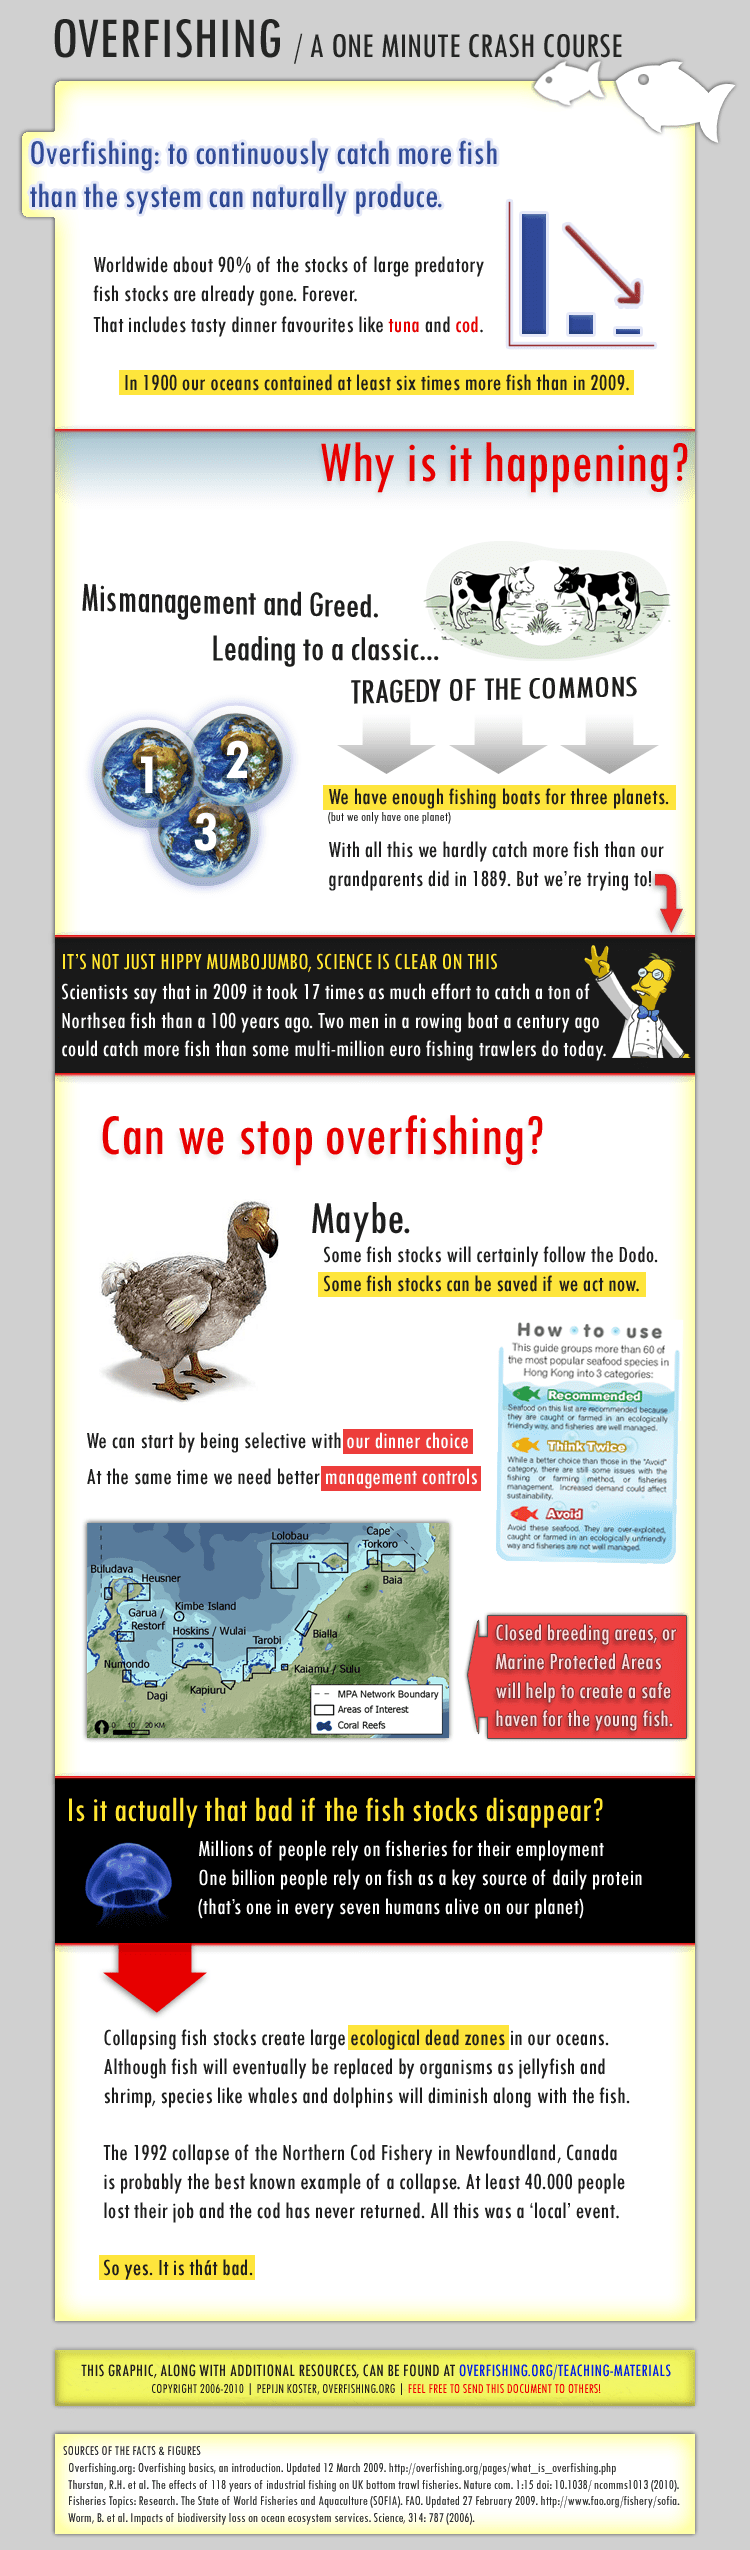 https://i1.wp.com/overfishing.org/pages/images/overfishing_infographic_v1.1.png